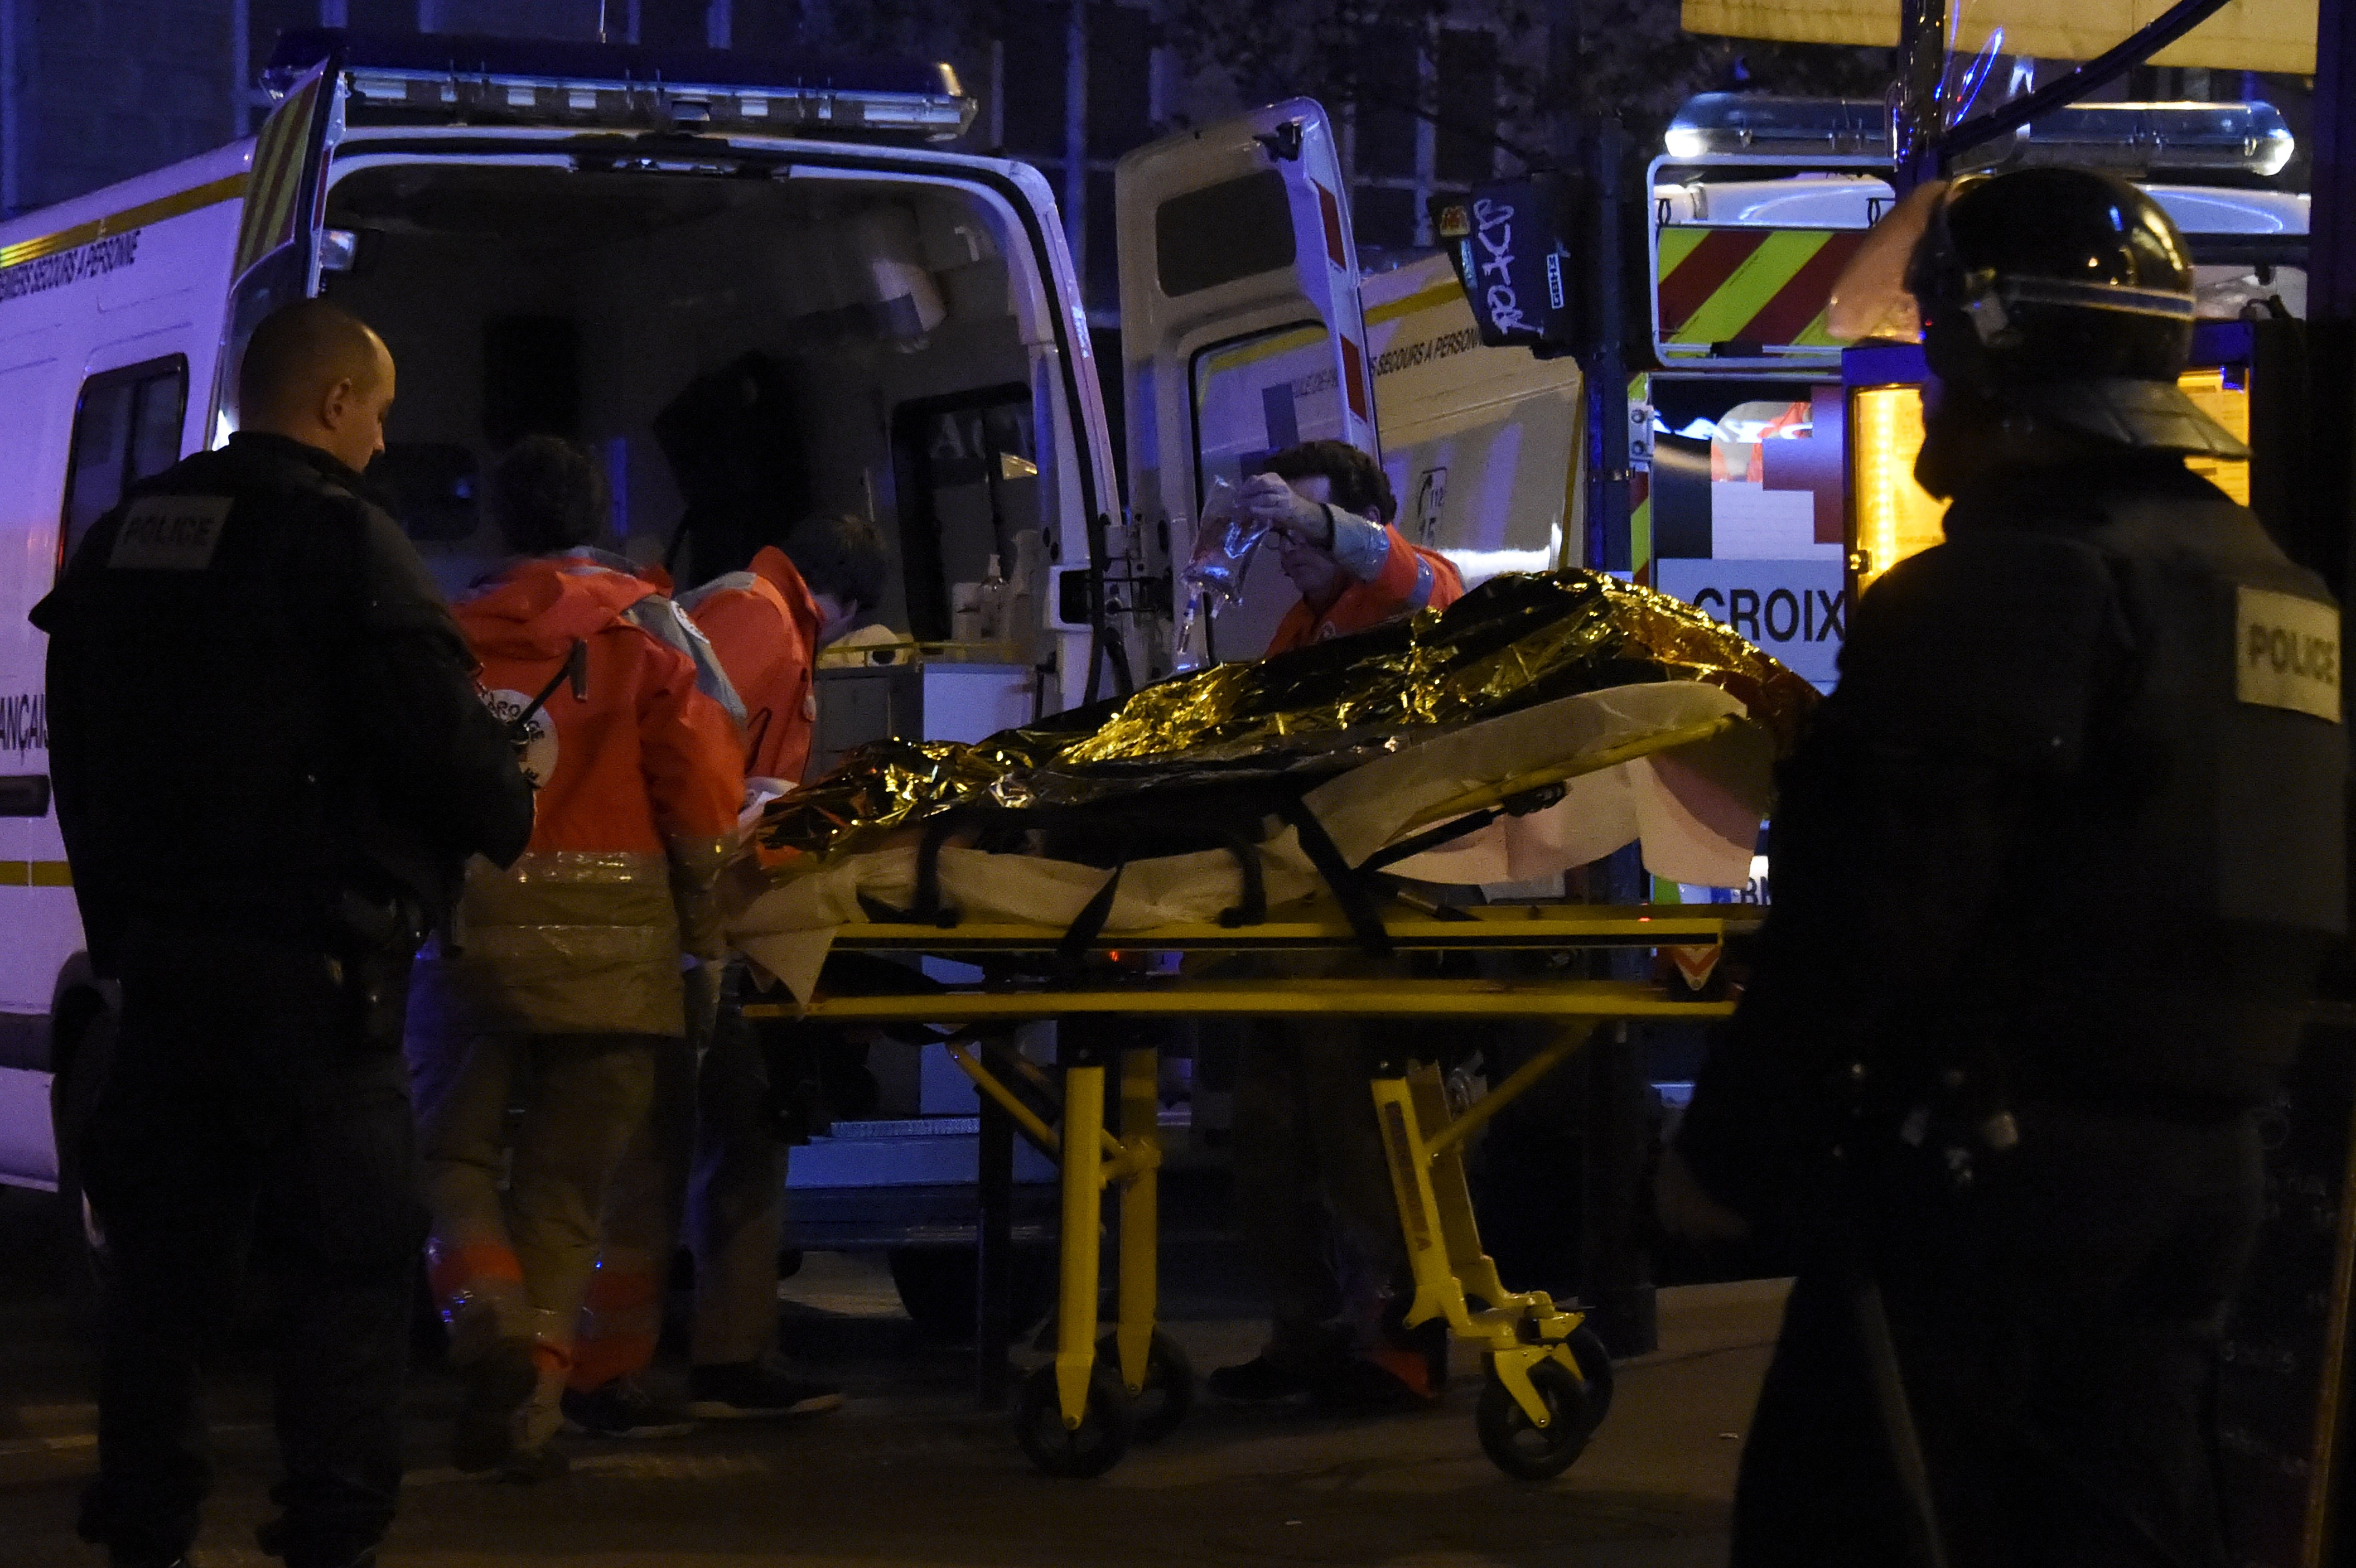 Rescue workers evacuate an injured person near the Bataclan concert hall. (Getty)